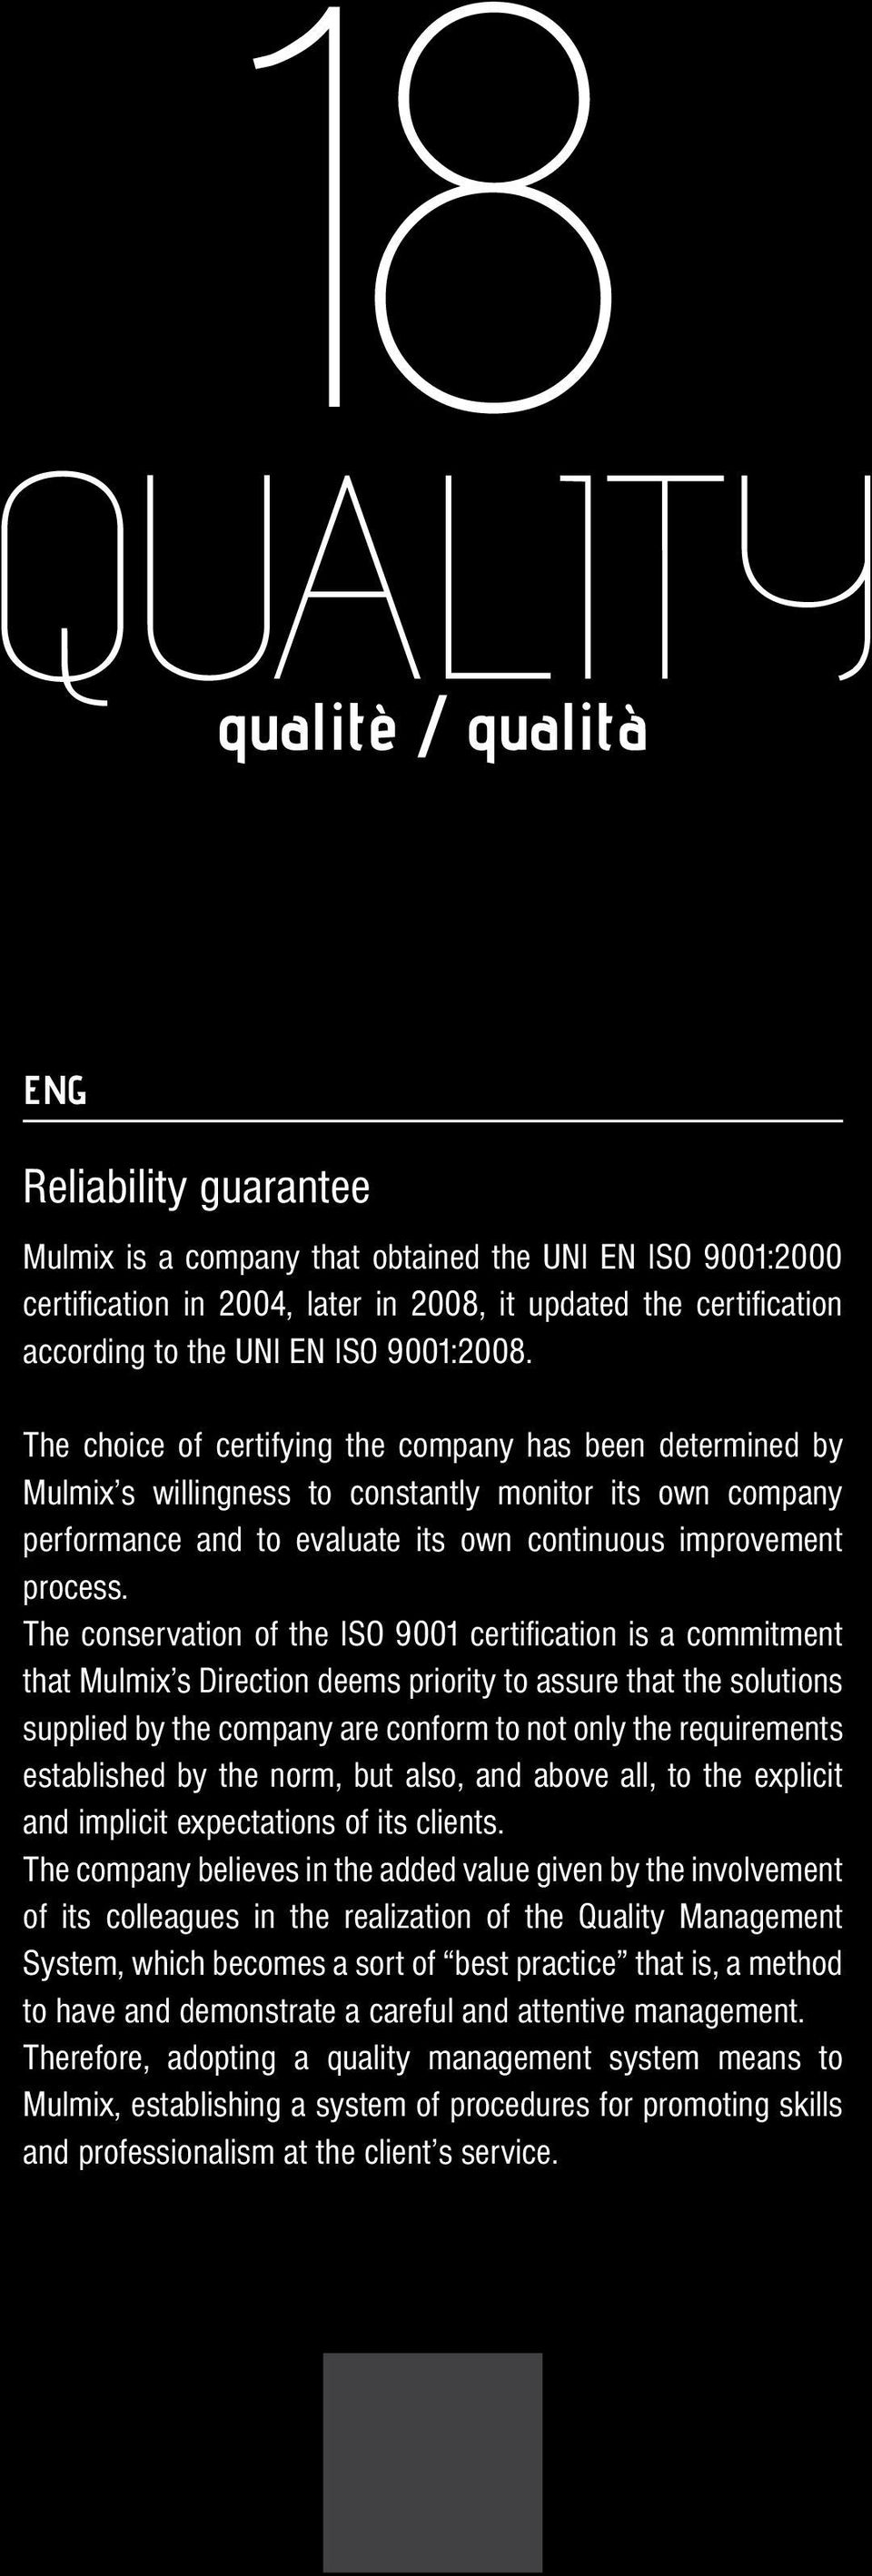 The choice of certifying the company has been determined by Mulmix s willingness to constantly monitor its own company performance and to evaluate its own continuous improvement process.